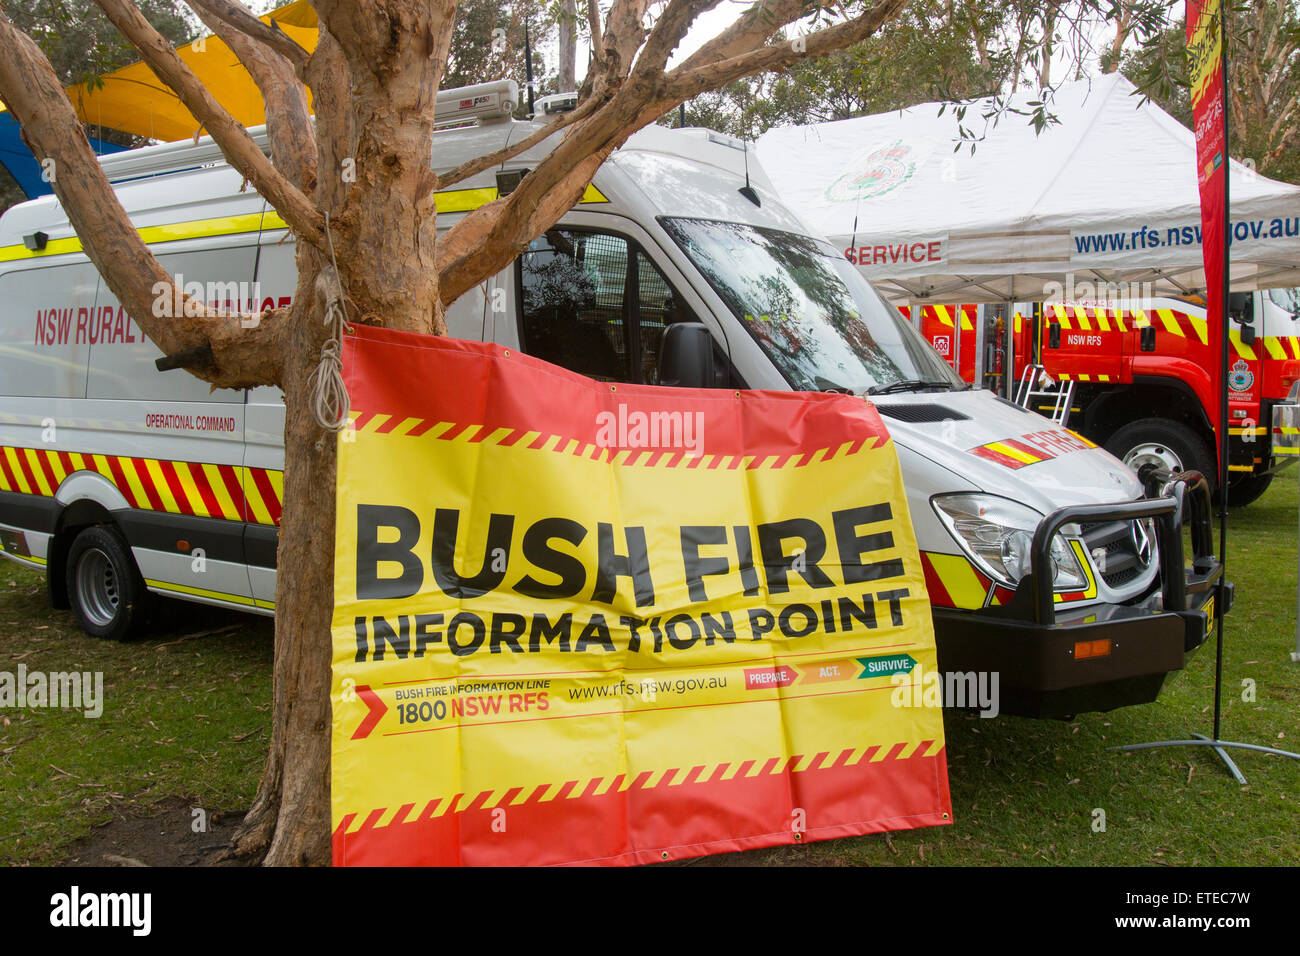 Australia Bush Fire Volunteer Stock Photos & Australia Bush Fire